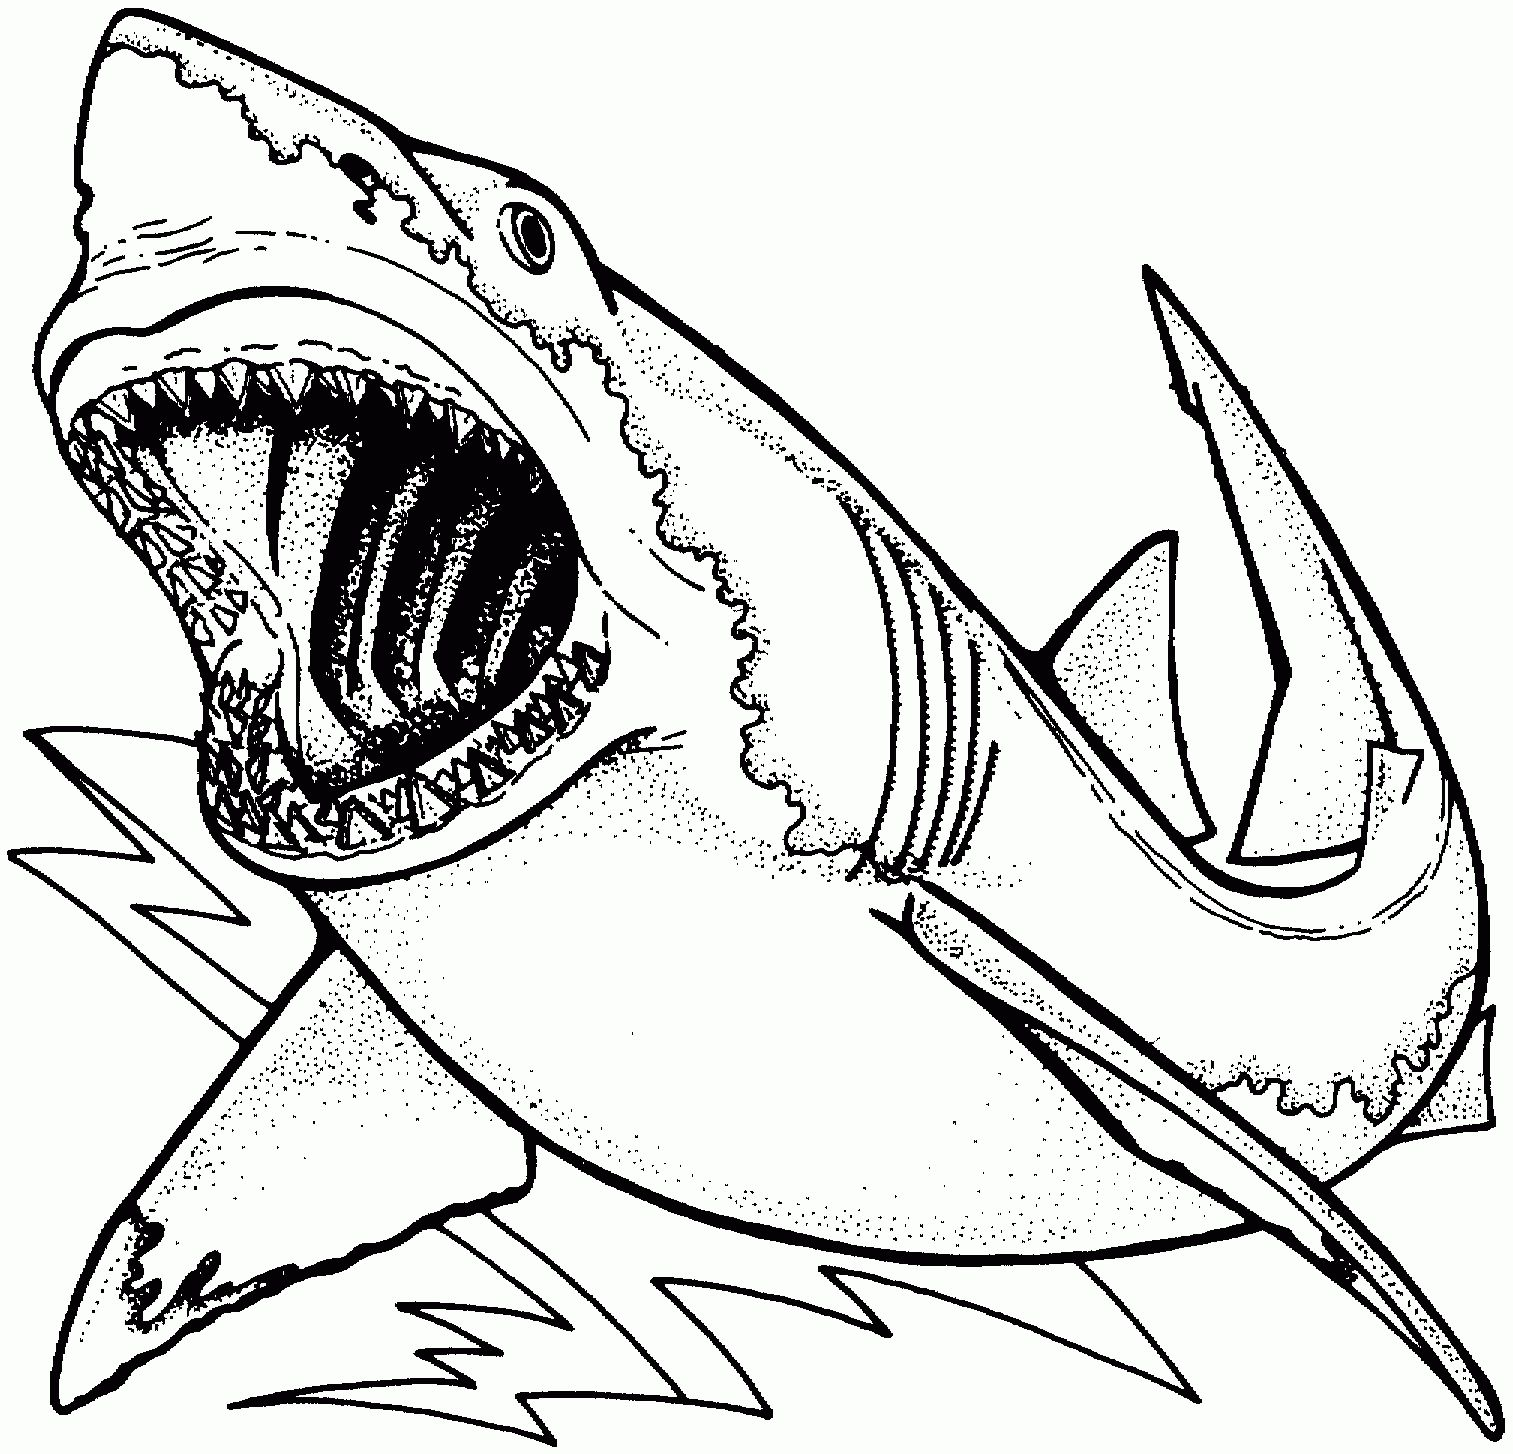 Compromise Shark Colouring Pictures Coloring Page Unique Whale Cool For Pages Sharks Shark Coloring Pages Animal Coloring Pages Coloring Pages